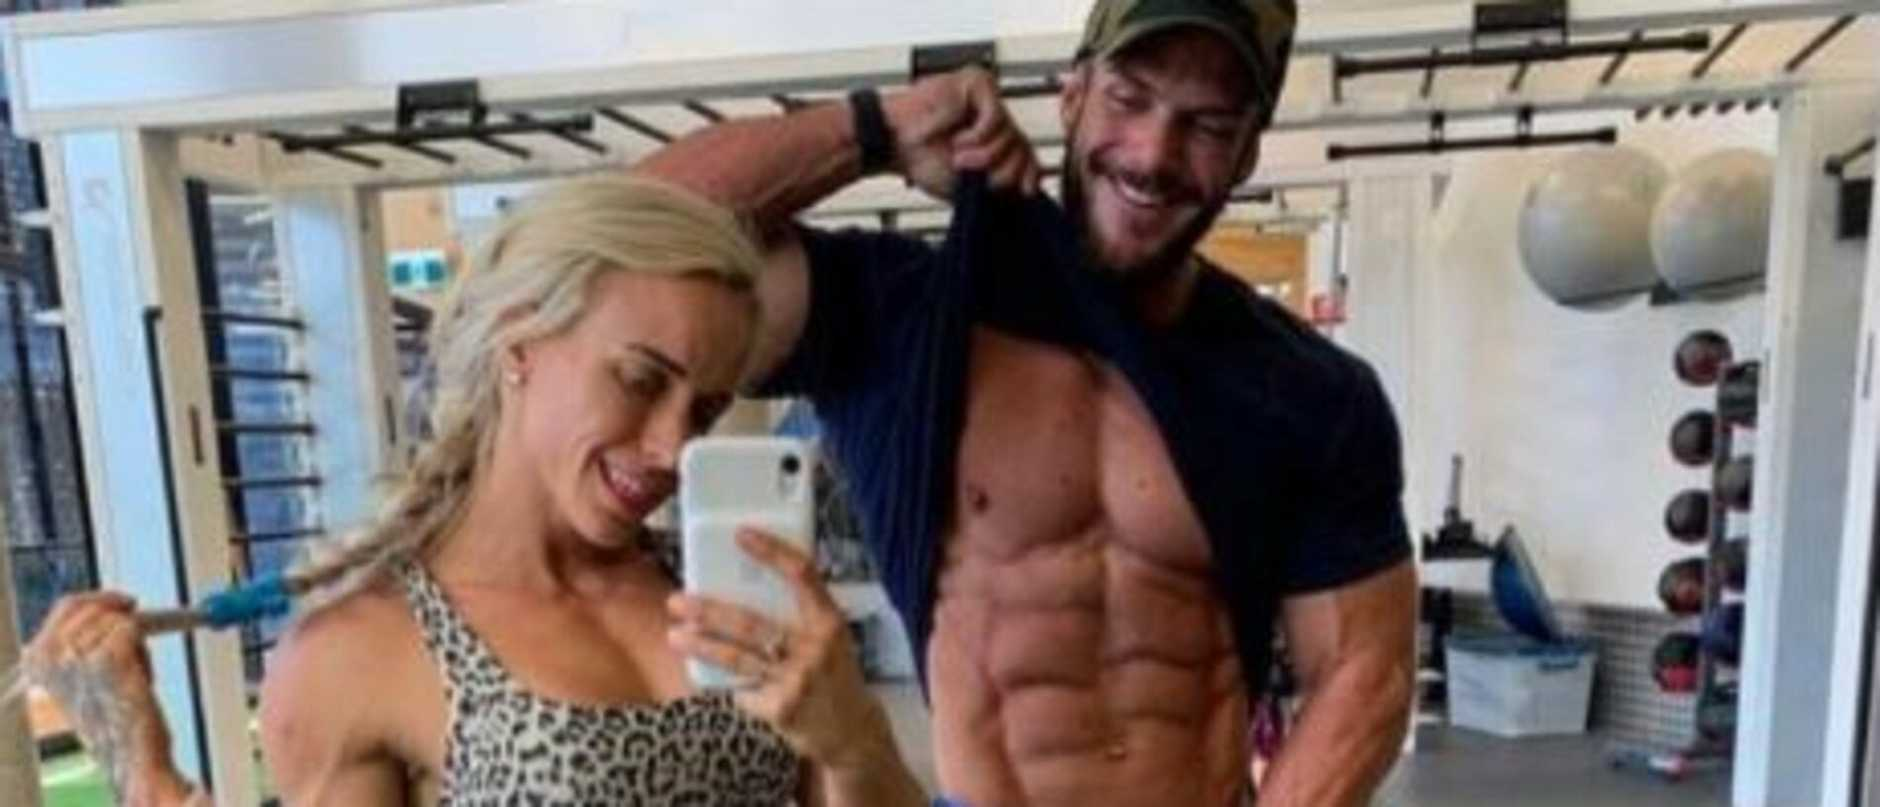 One half of an Instagram fitness power couple has been caught with synthetic steroids, testosterone and peptides he used to help enhance his physique.